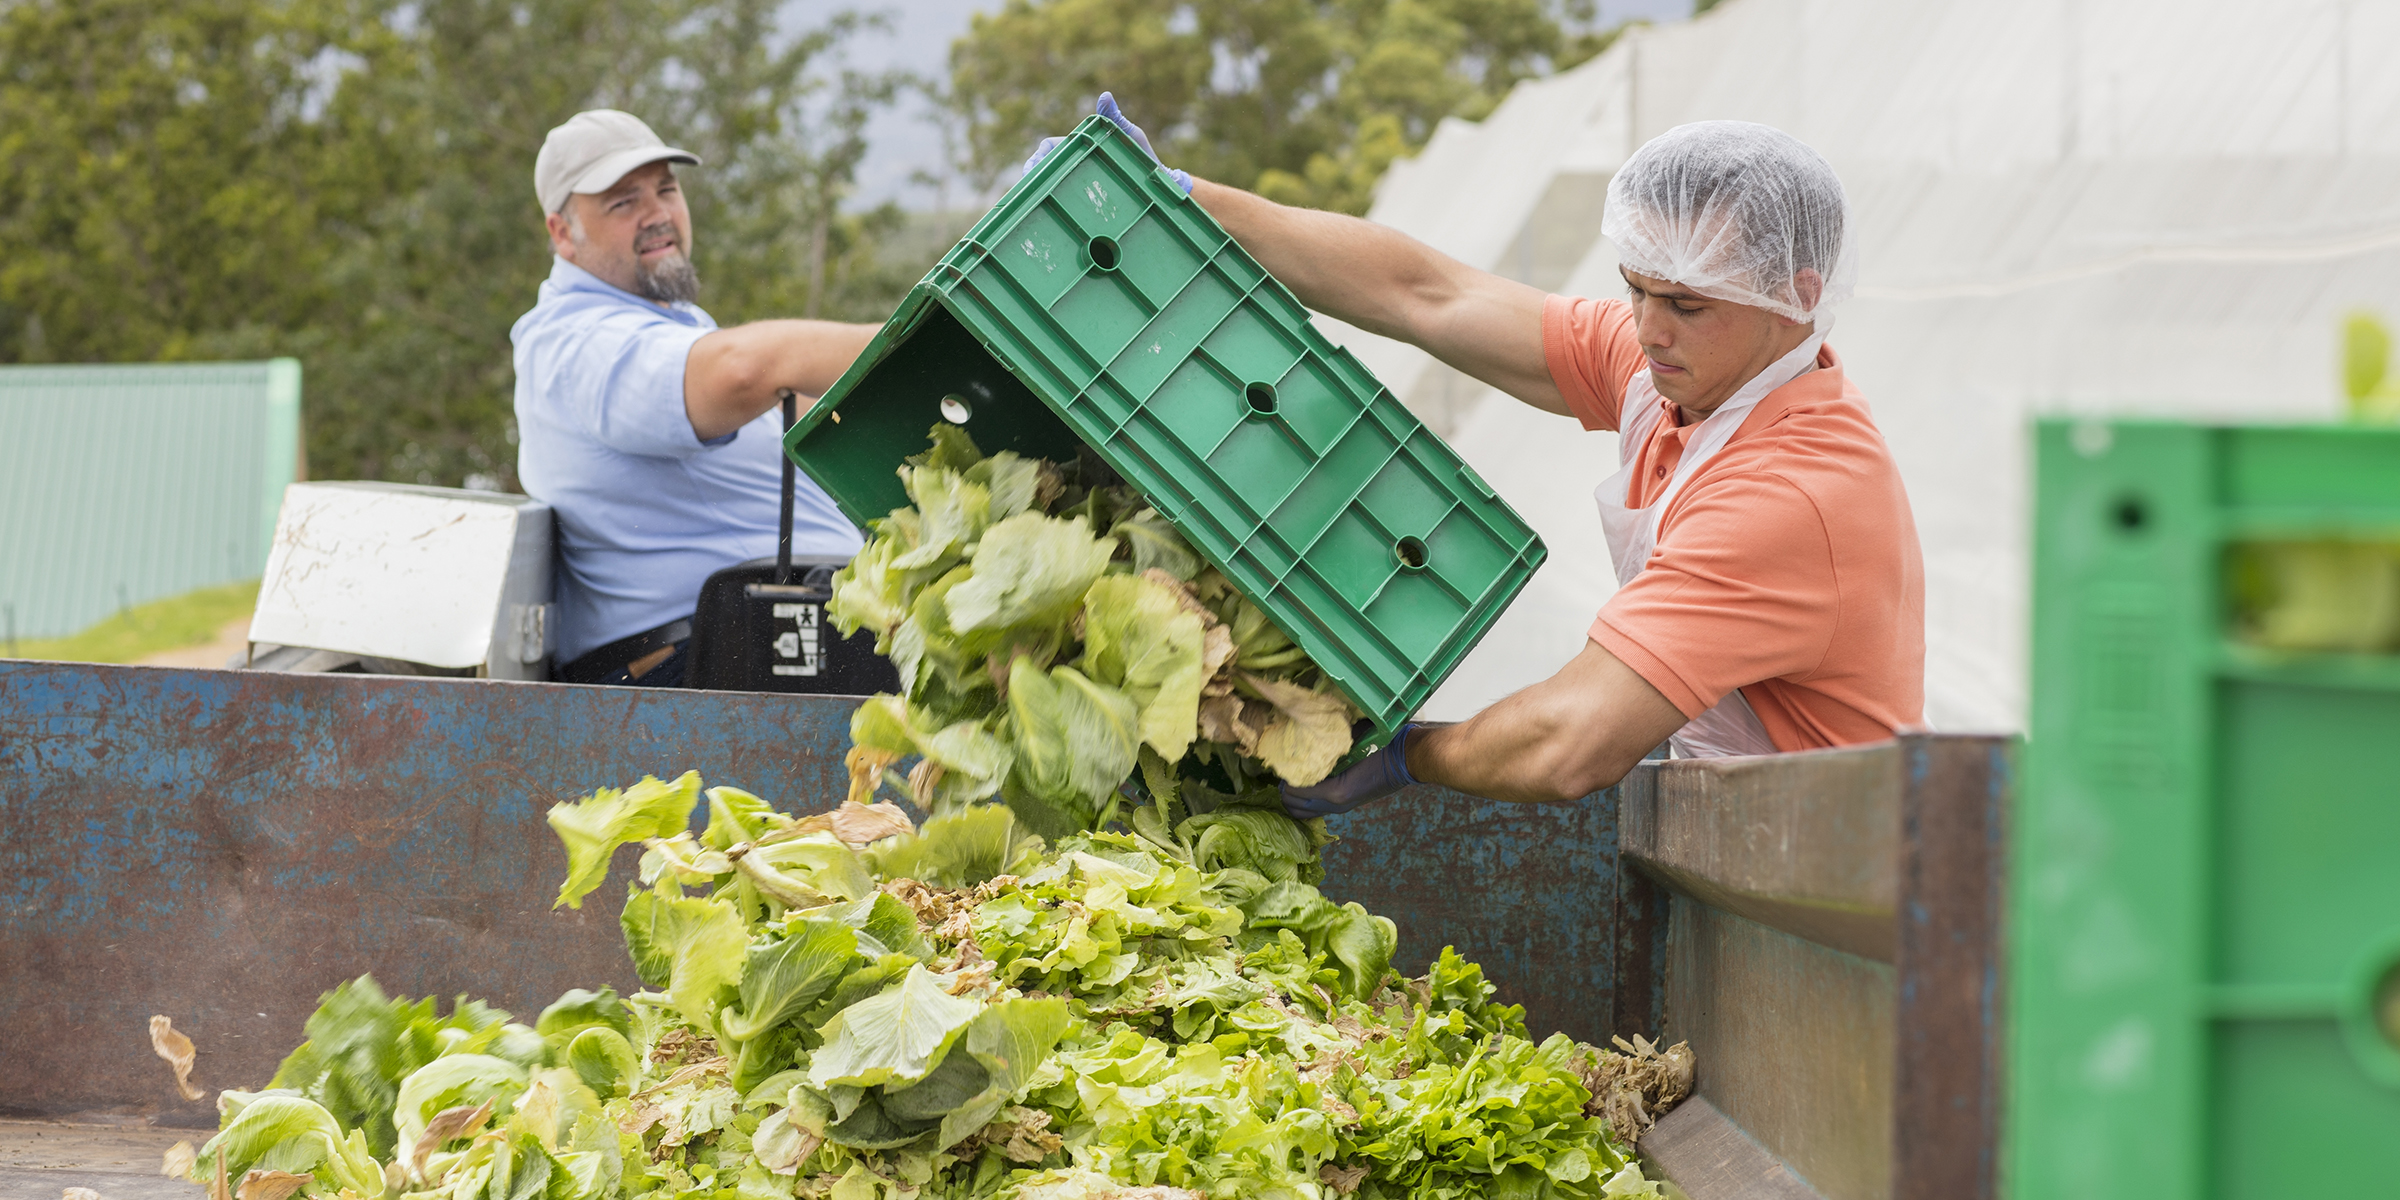 Why farmers are throwing away food amid rising demand for food